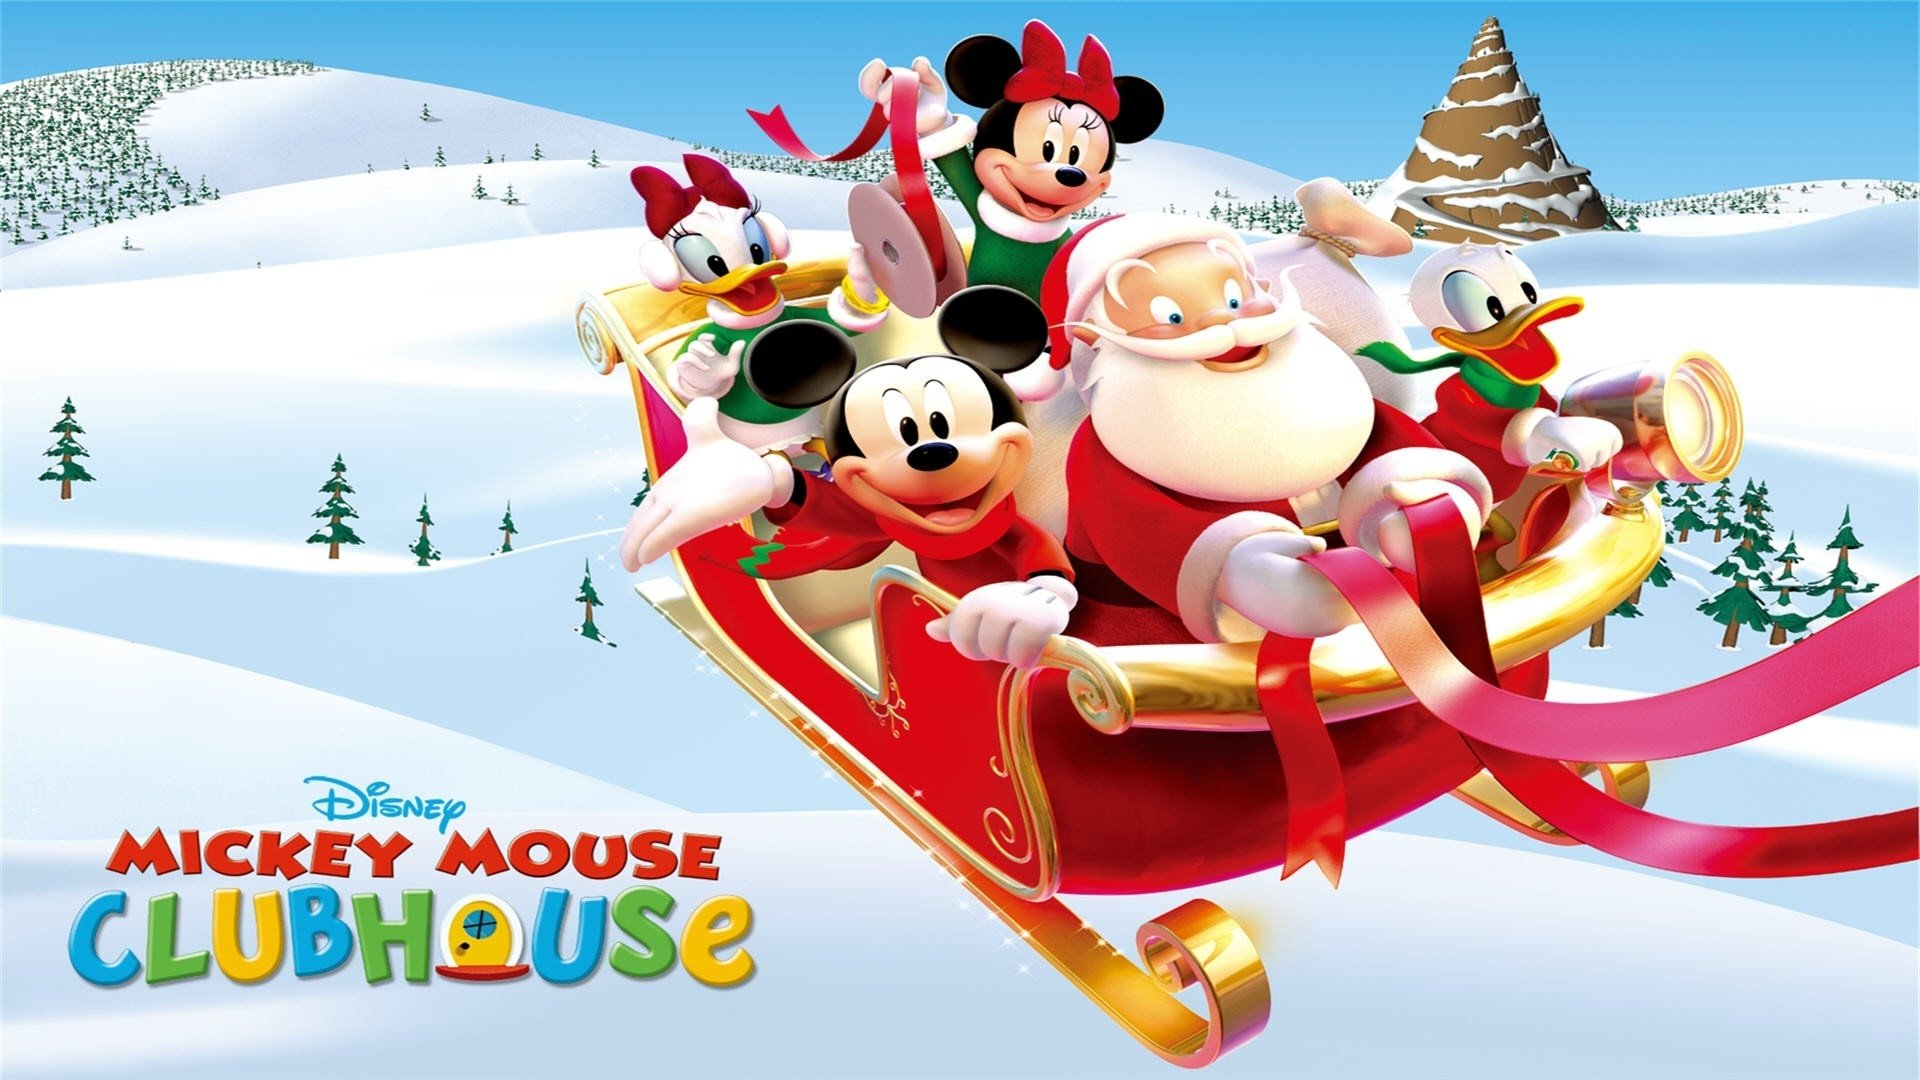 1 mickey mouse clubhouse hd wallpapers background images wallpaper abyss 1 mickey mouse clubhouse hd wallpapers